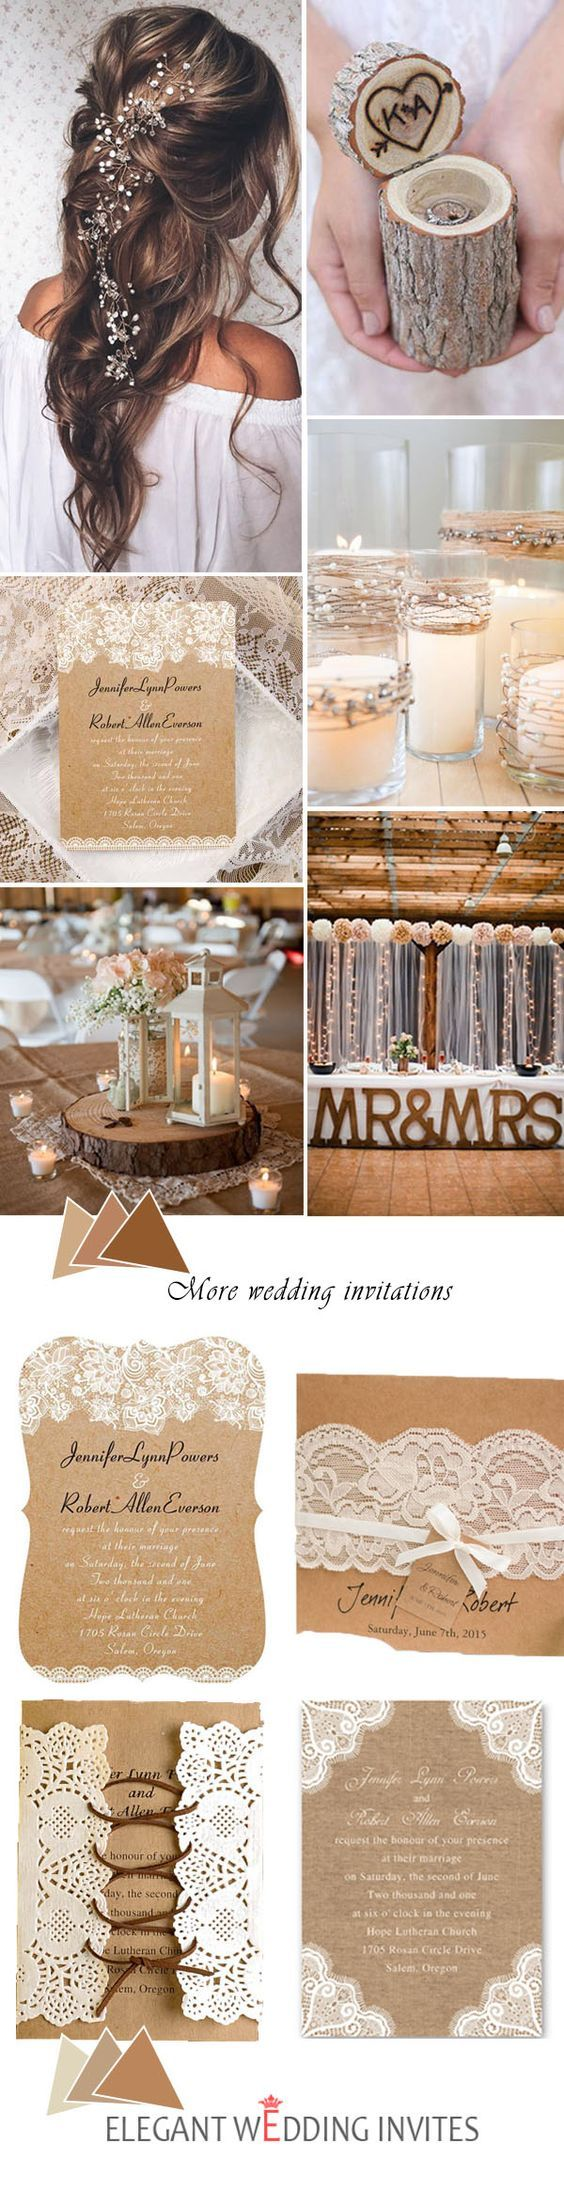 how long should wedding invitations be sent out%0A Top   Rustic Wedding Ideas and Matched Wedding Invitations